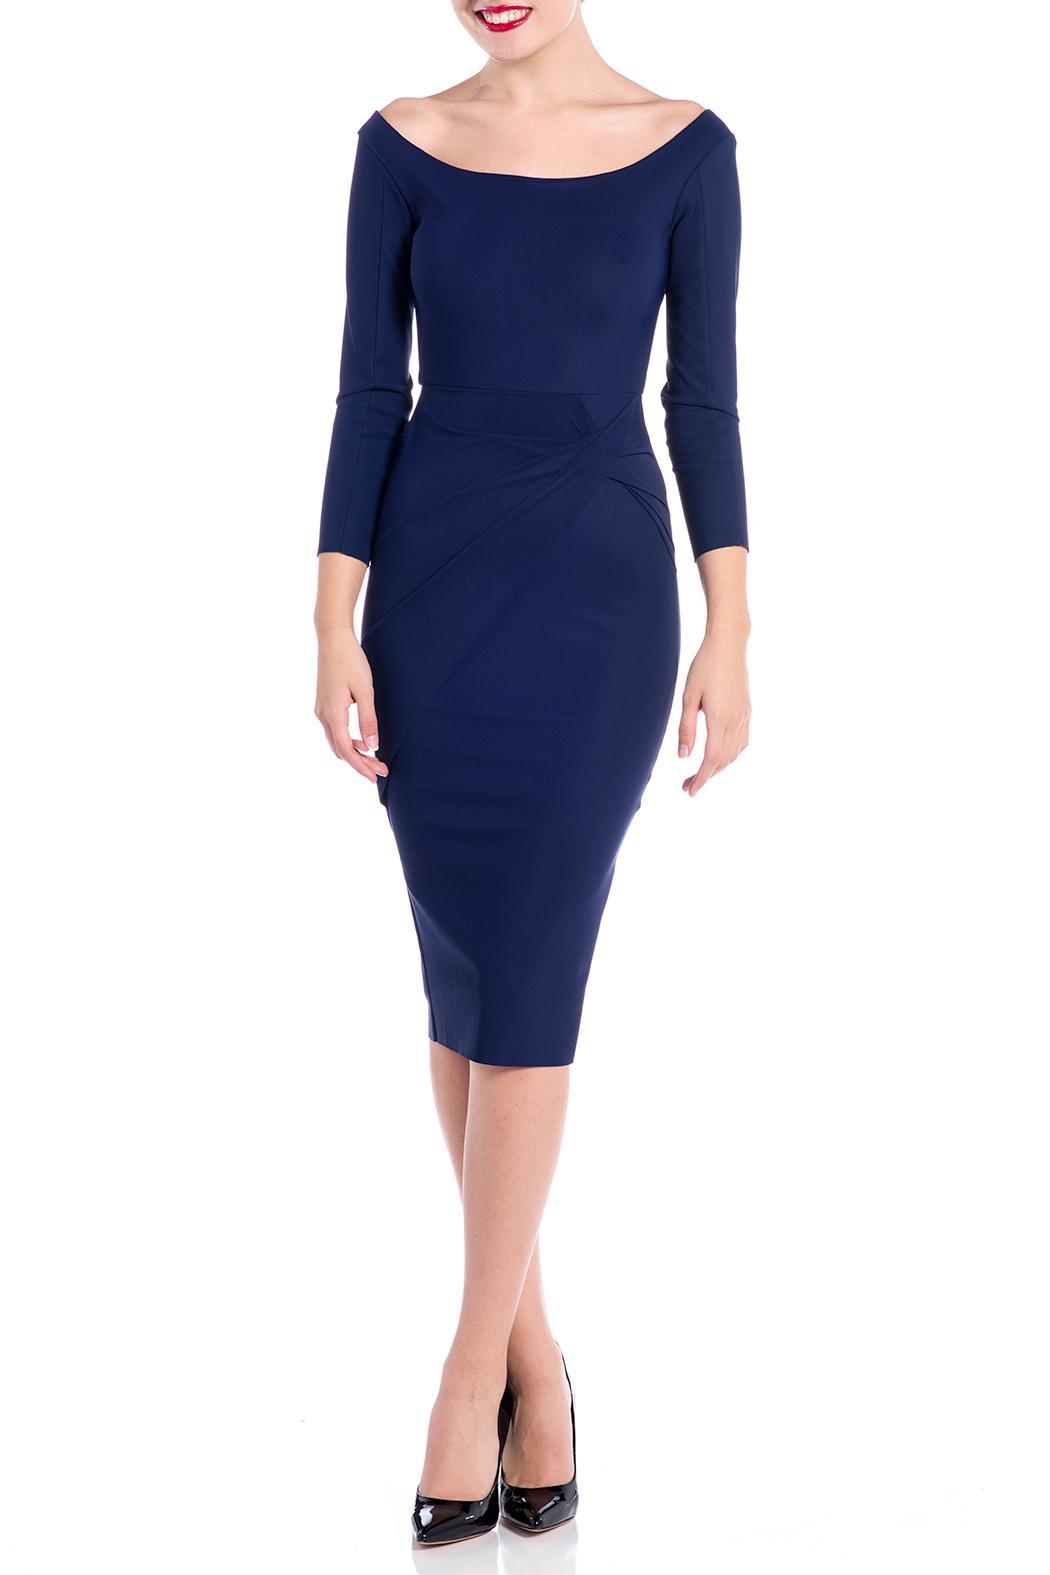 Greta Constantine Tempesta Cocktail Dress - Front Cropped Image